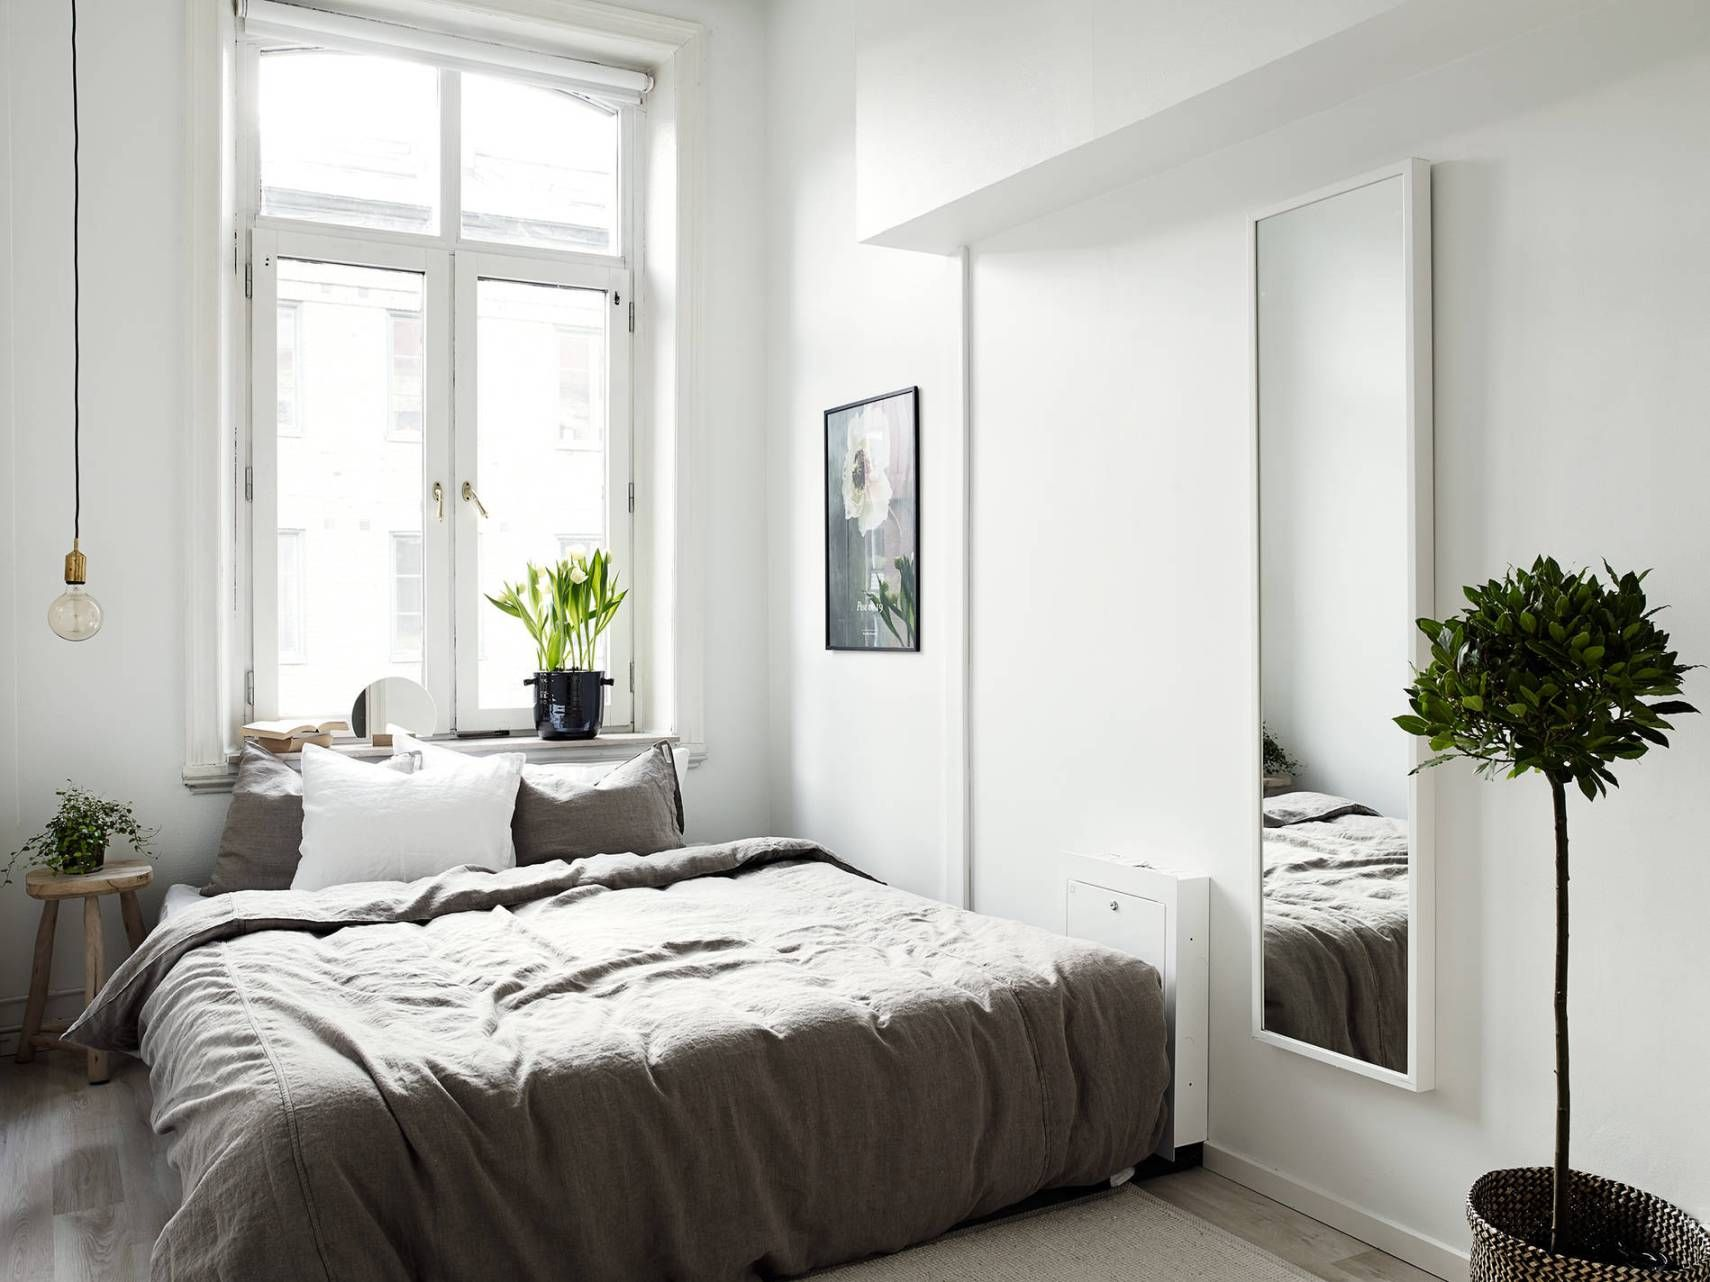 fresh and inviting home scandinavian bedroom decor warm on modern cozy bedroom decorating ideas id=69305